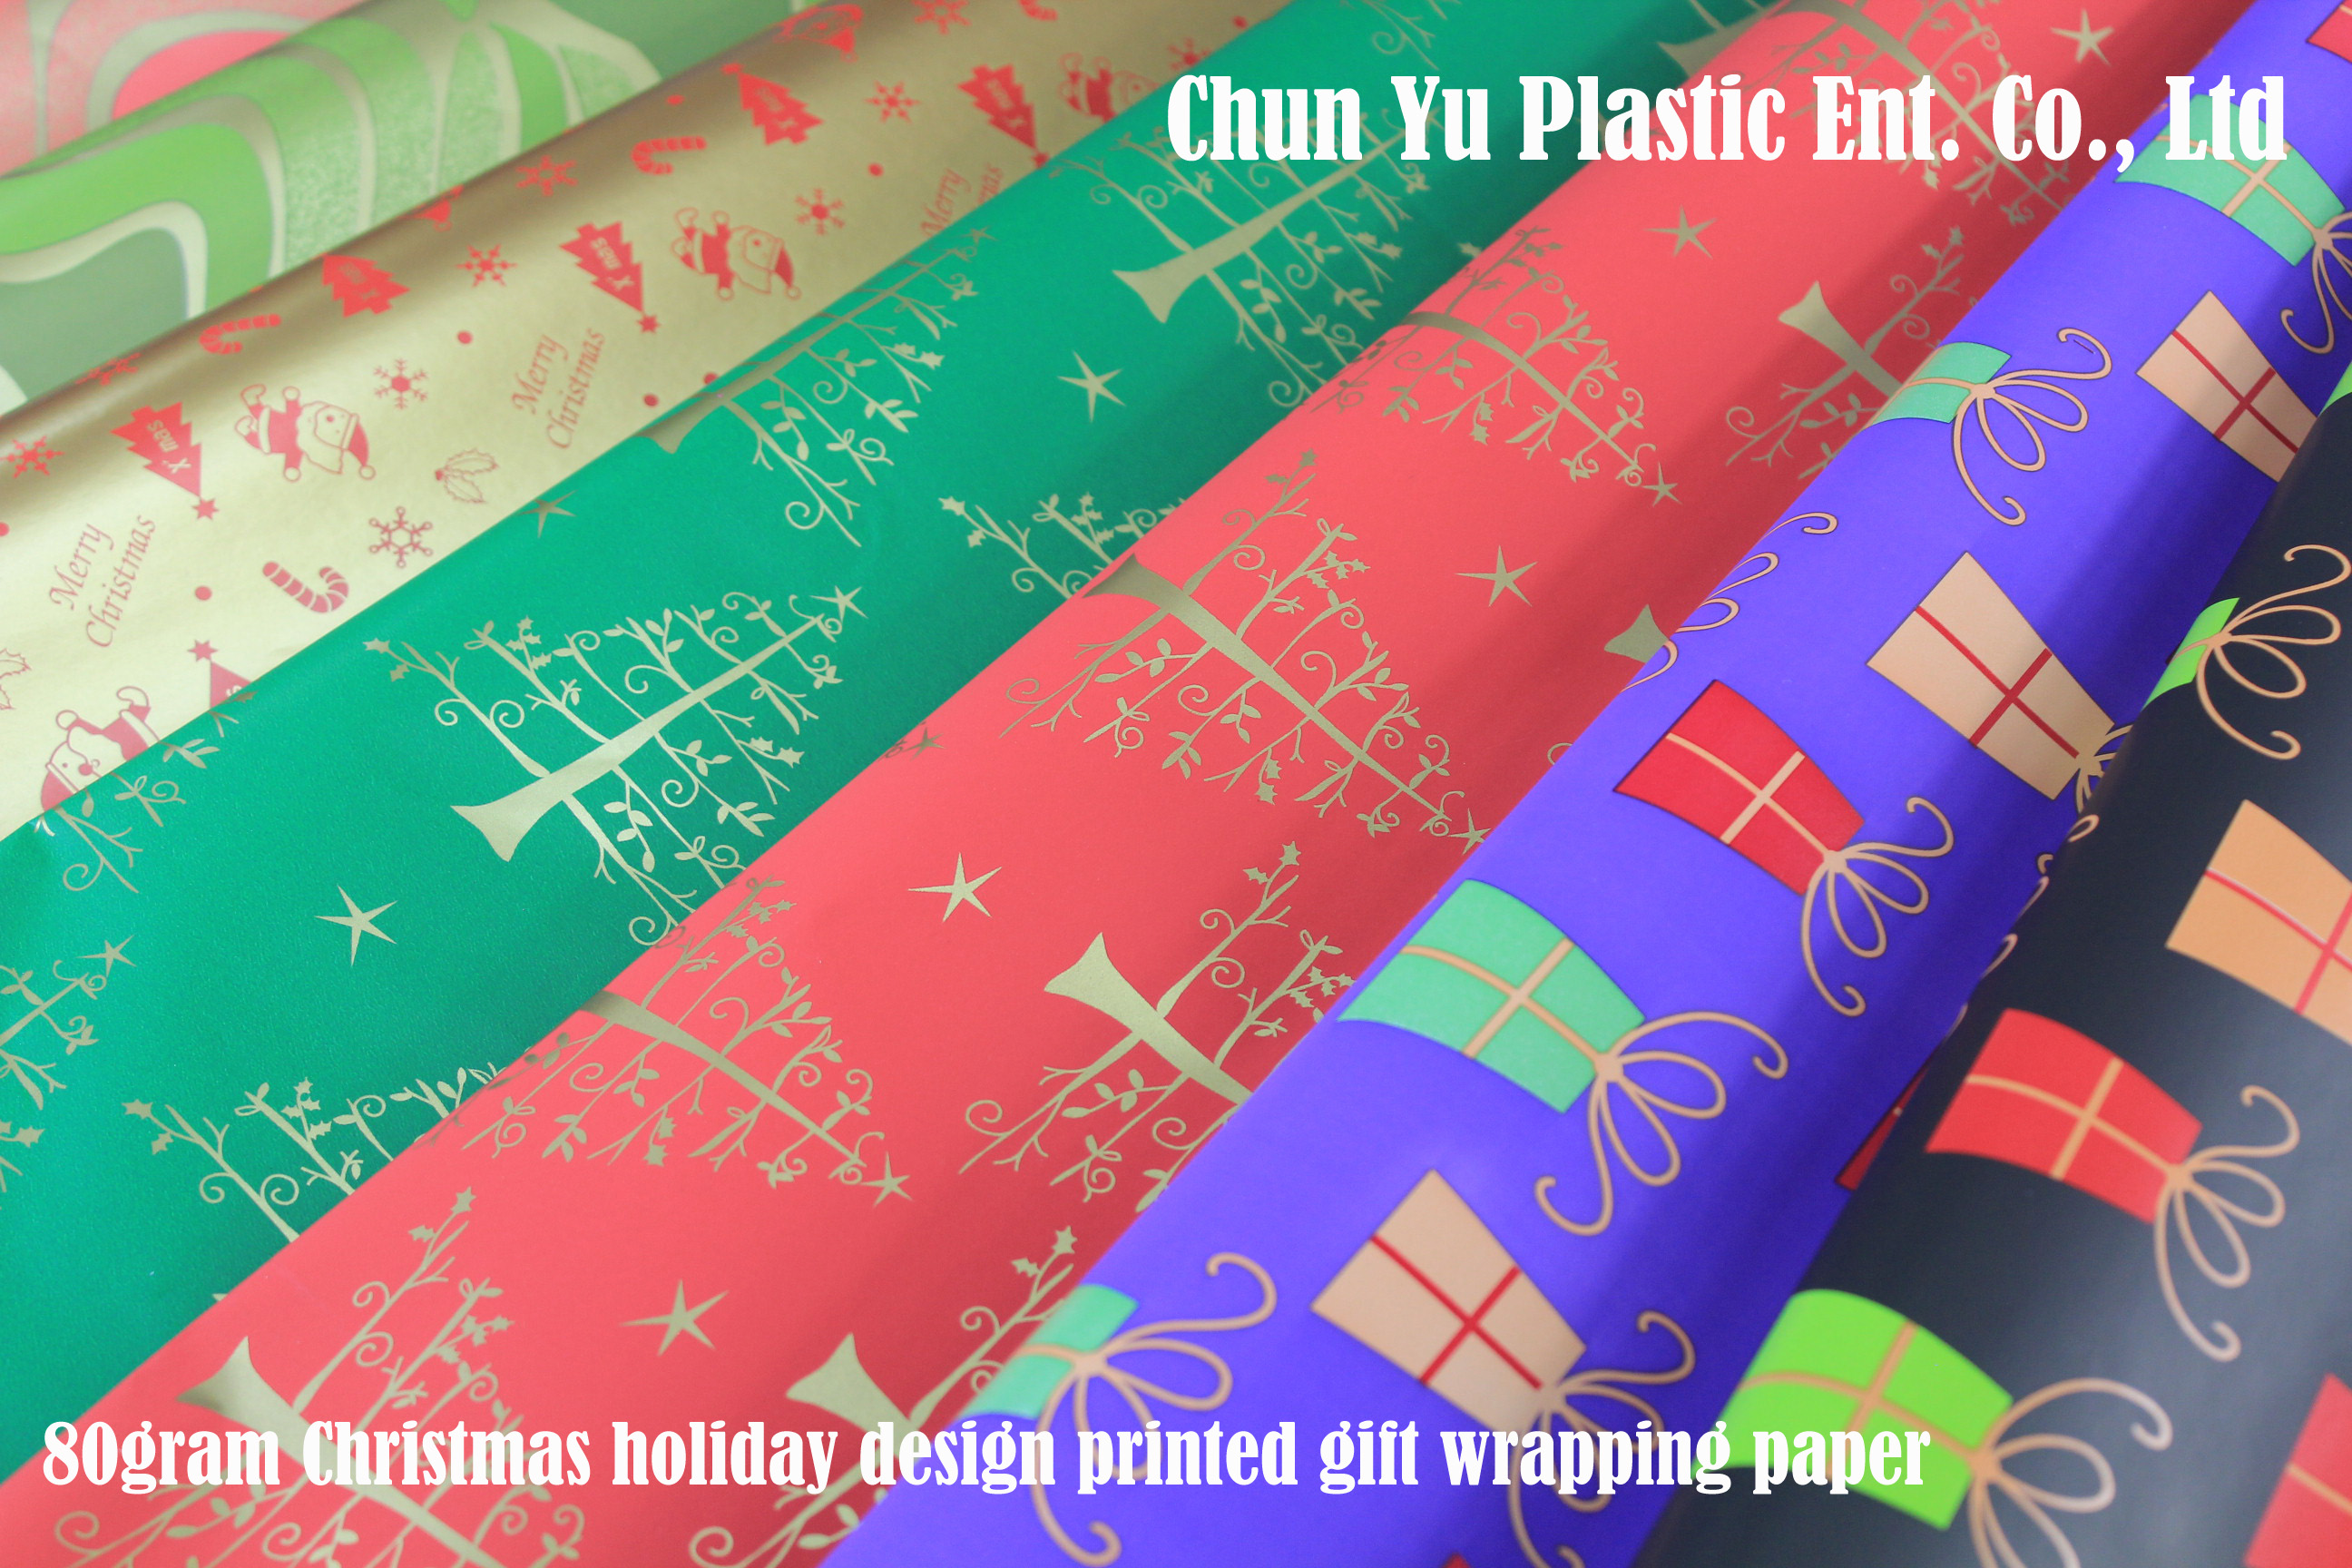 Gift wrapping paper printed with Christmas design for your gifts in holiday season